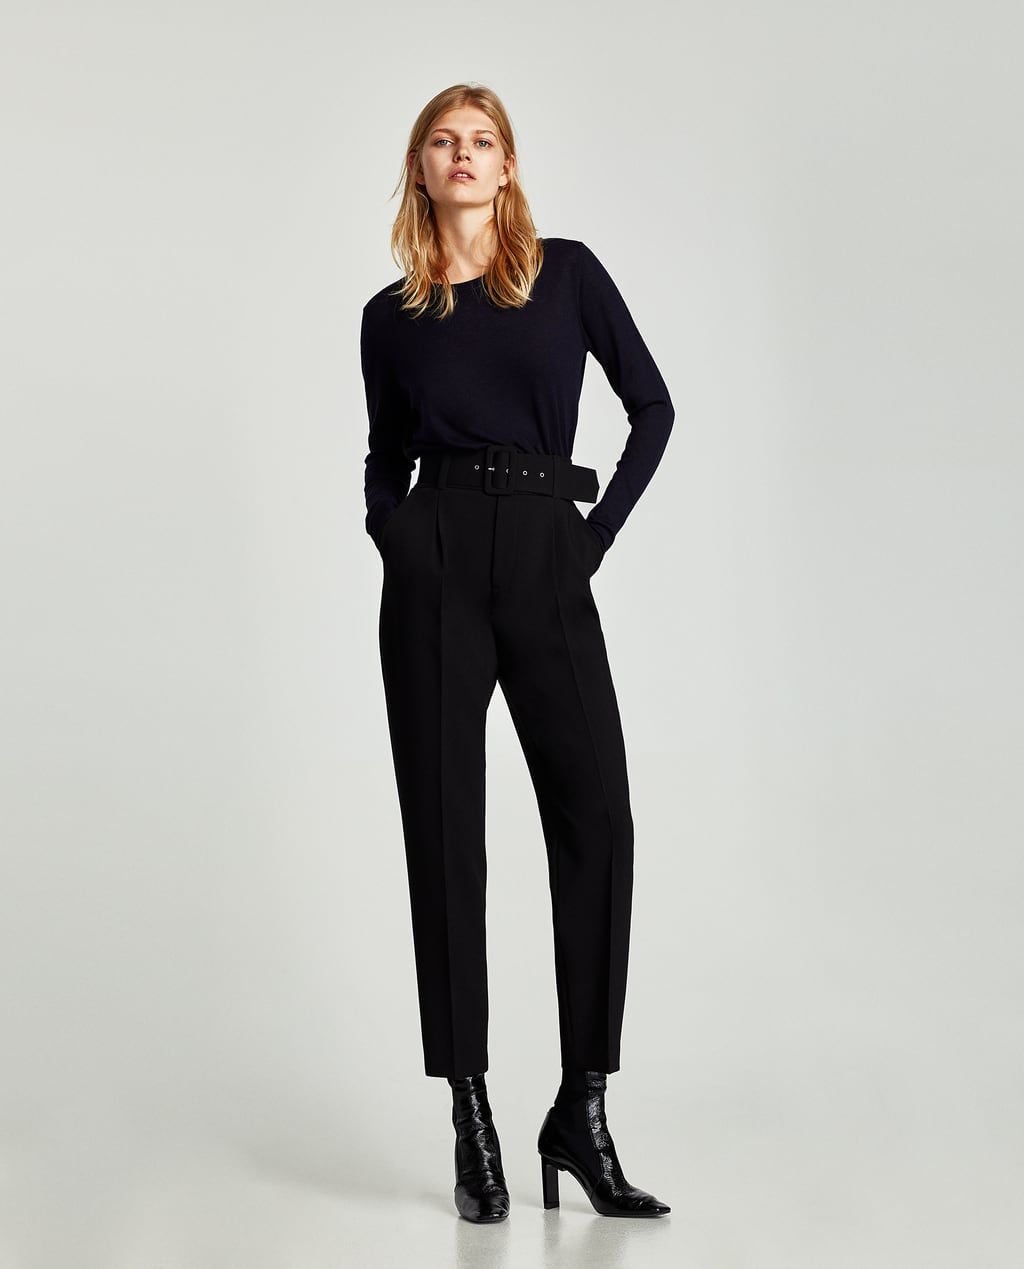 923a9534 CREPE TROUSERS WITH BELT-View all-TROUSERS-WOMAN | ZARA Macedonia ...